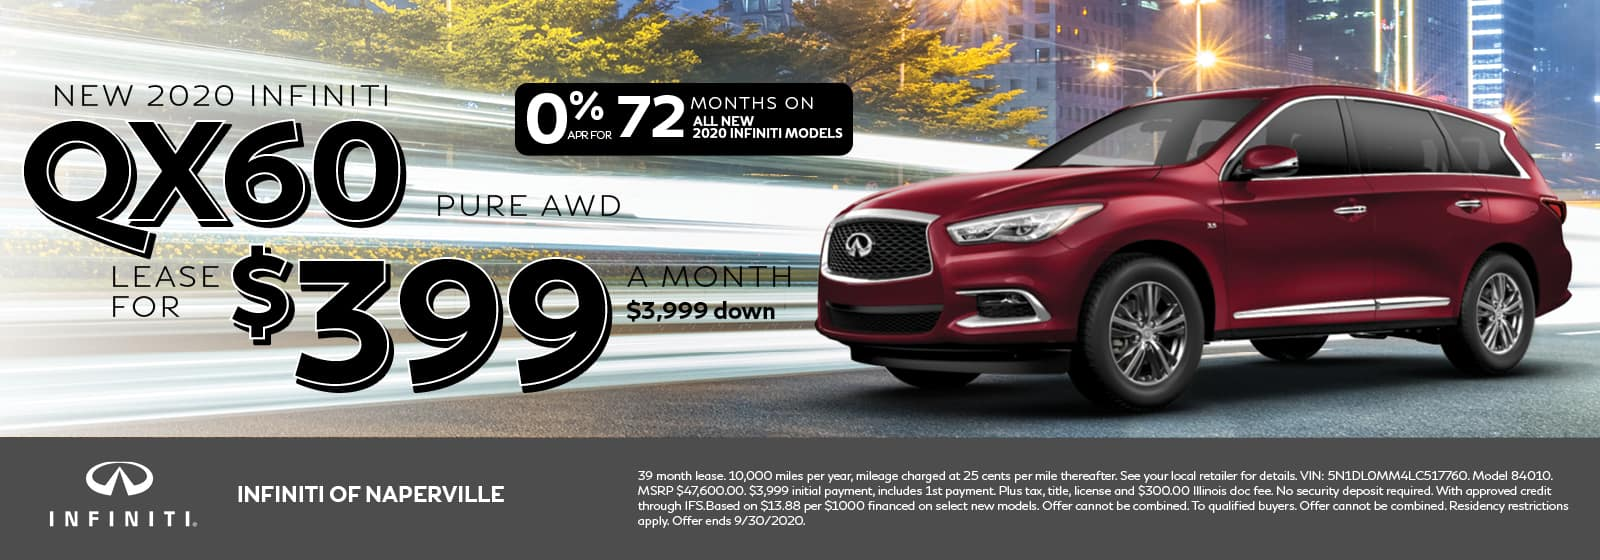 2020 INFINITI QX60 lease offer, $399/mo for 72 Months | Naperville, IL